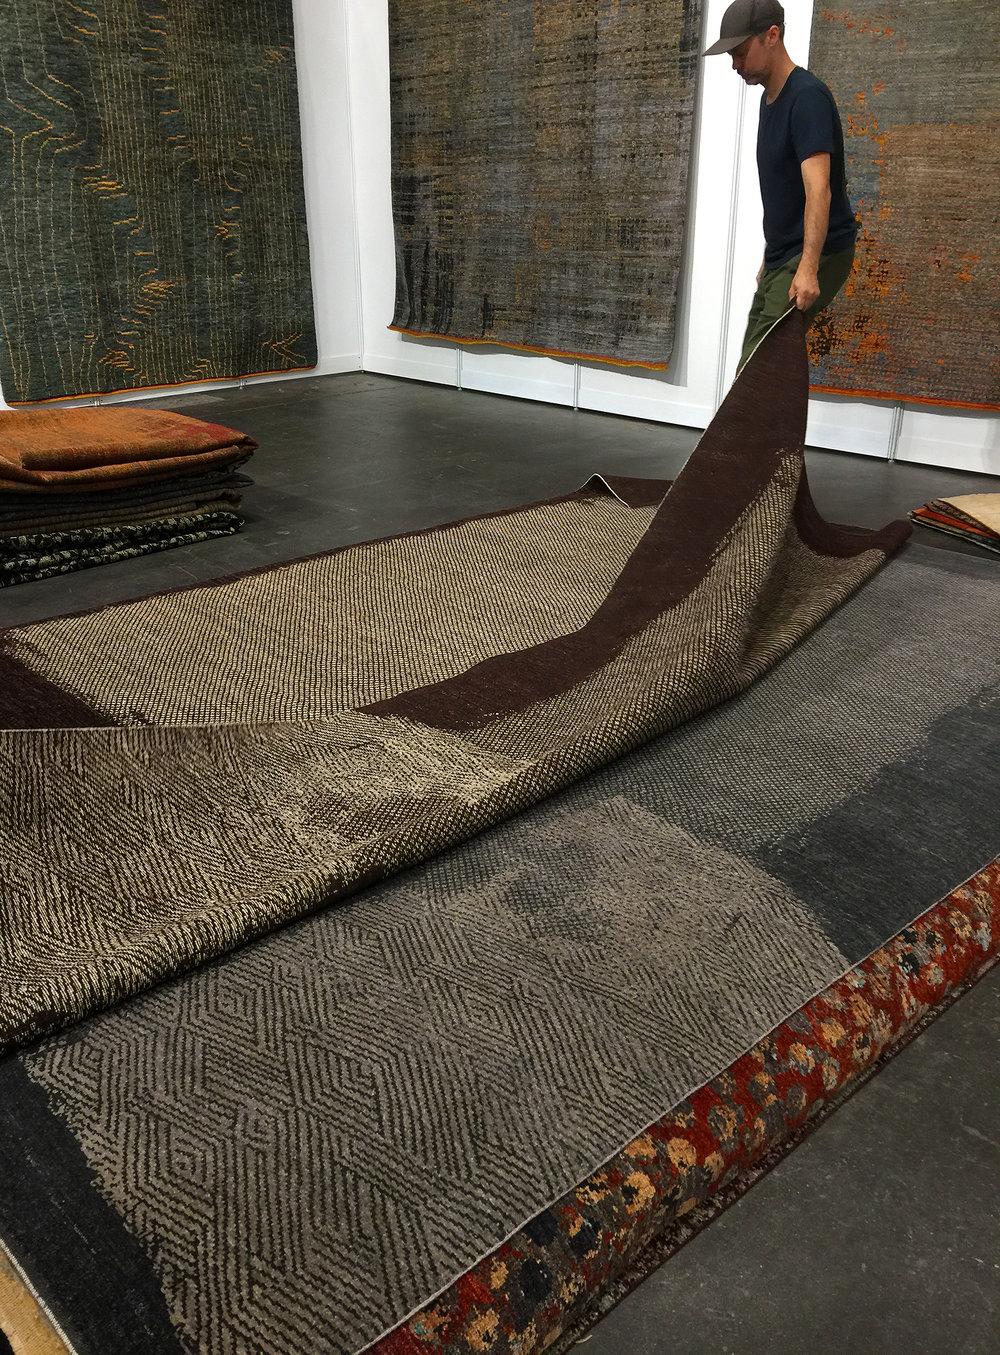 At the Rug Show in New York, 2017